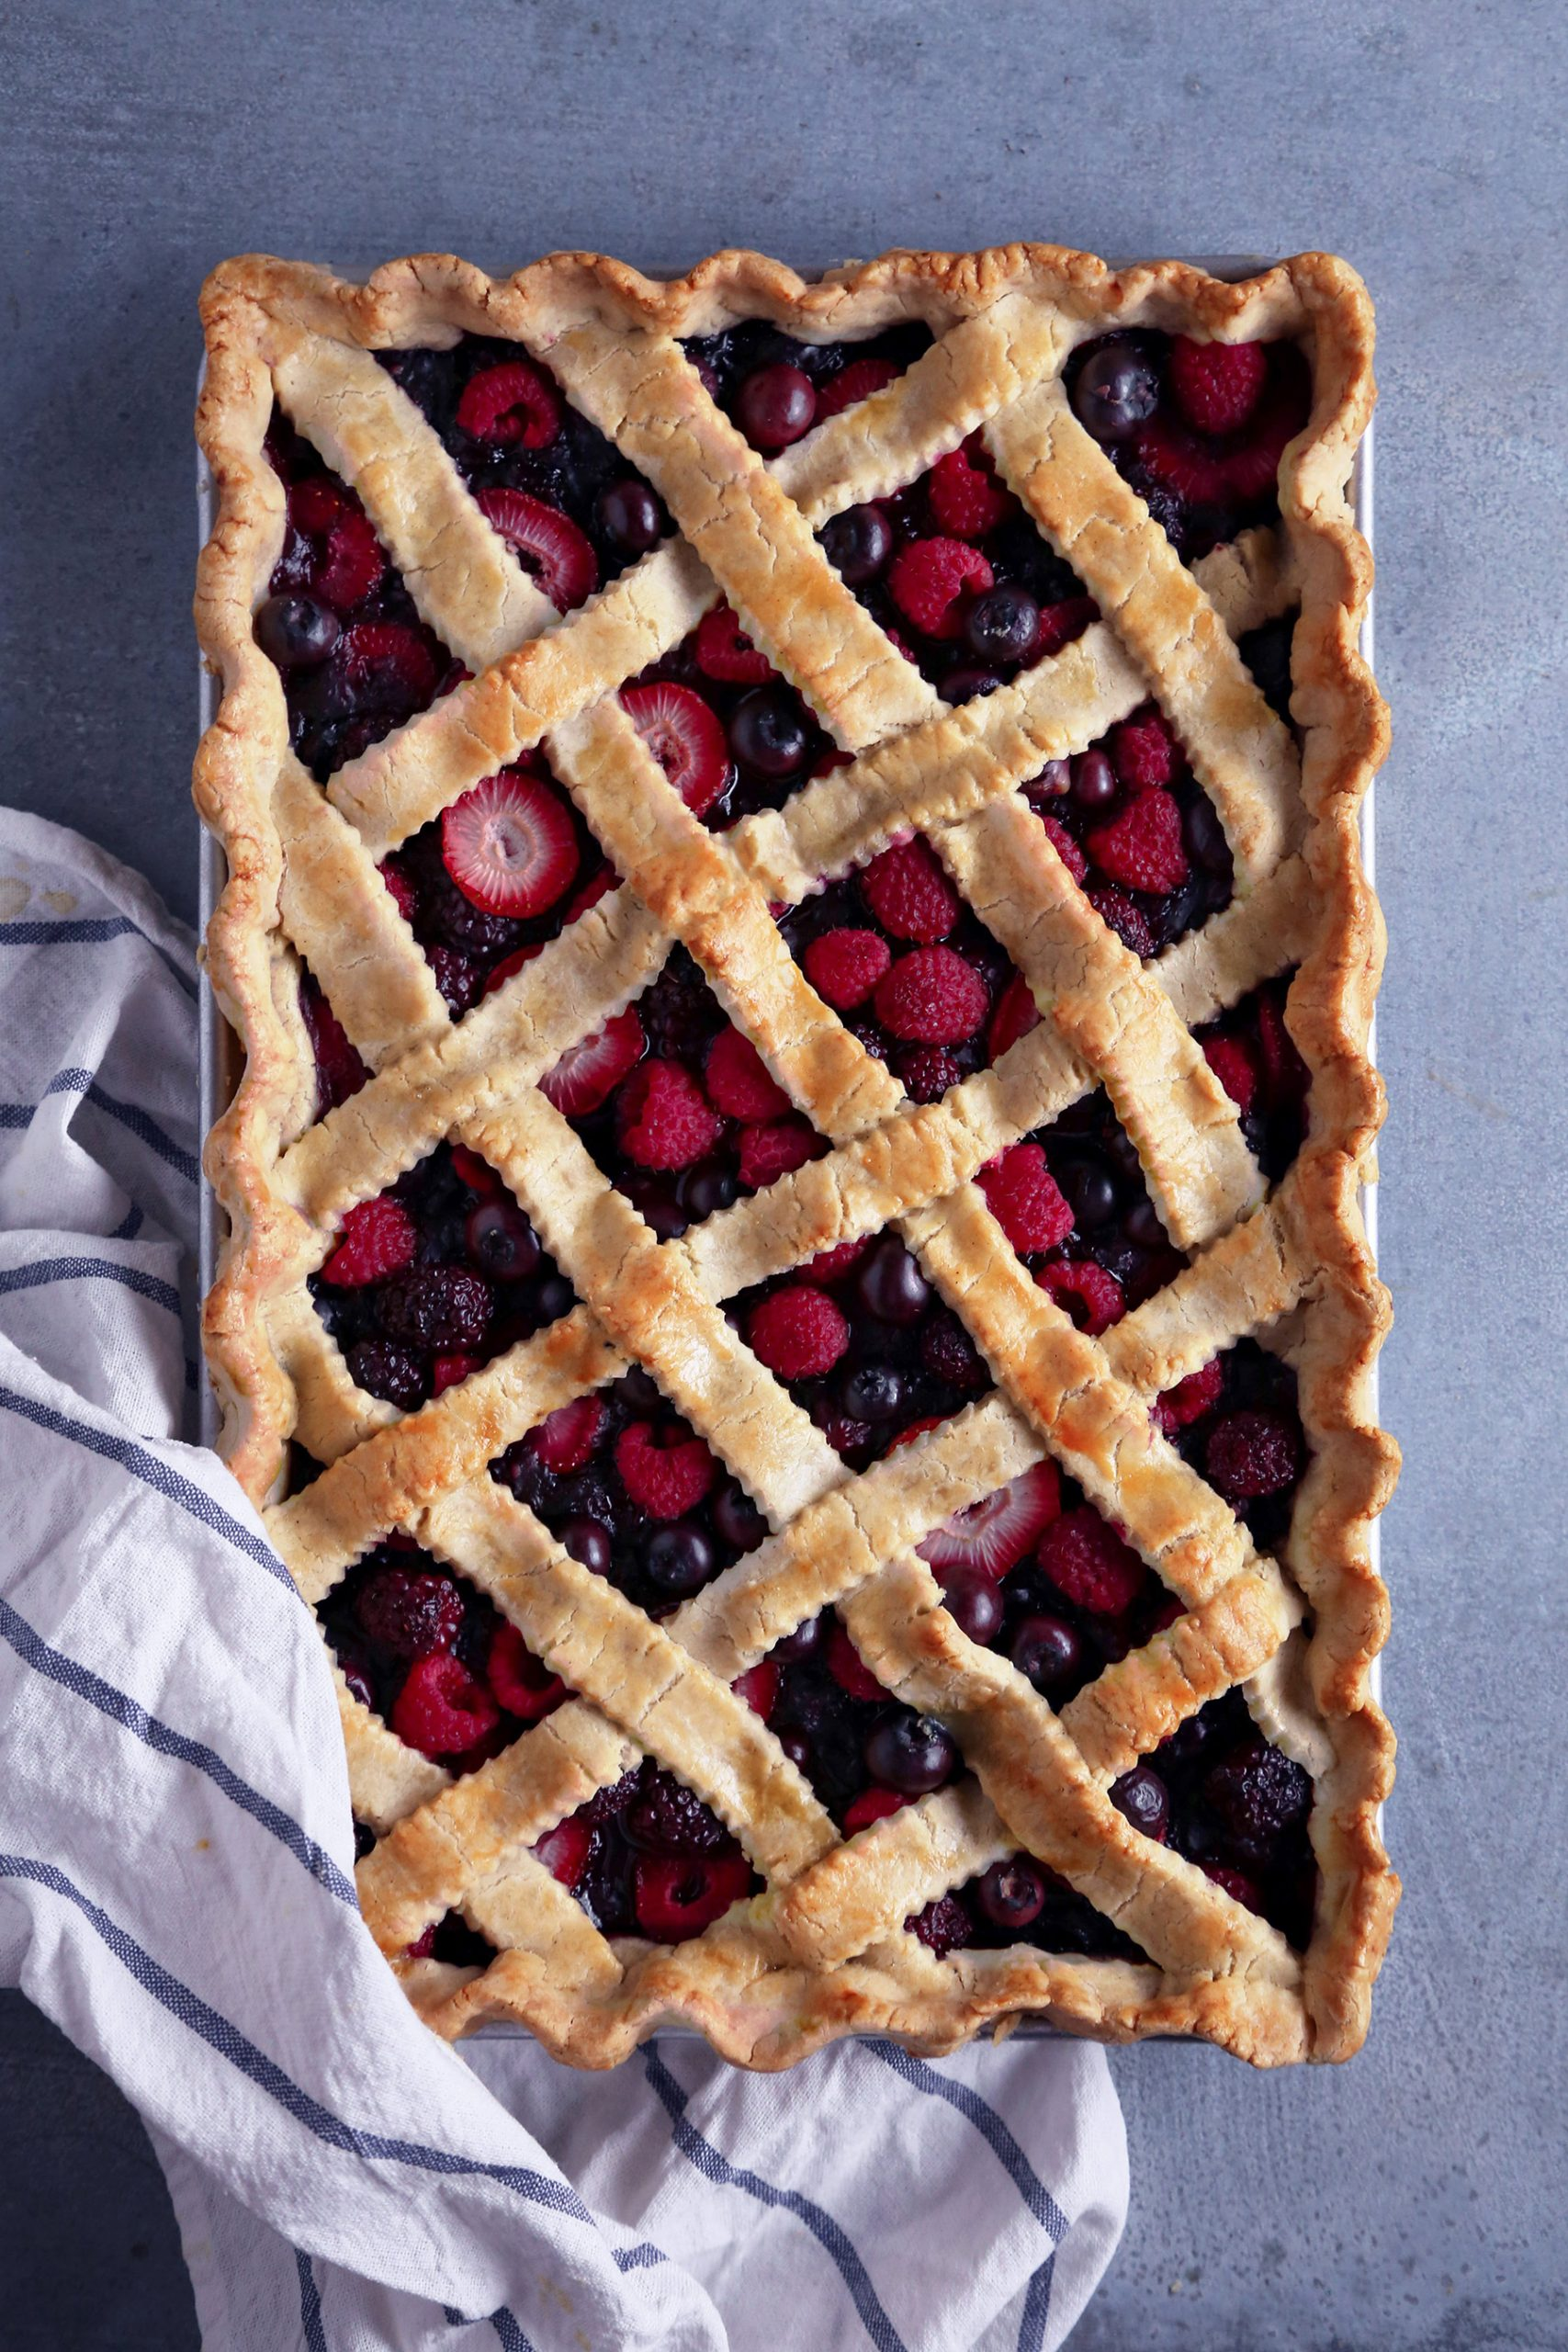 Mixed Berry Slab Pie | Vegan friendly and Refined Sugar Free with Gluten Option